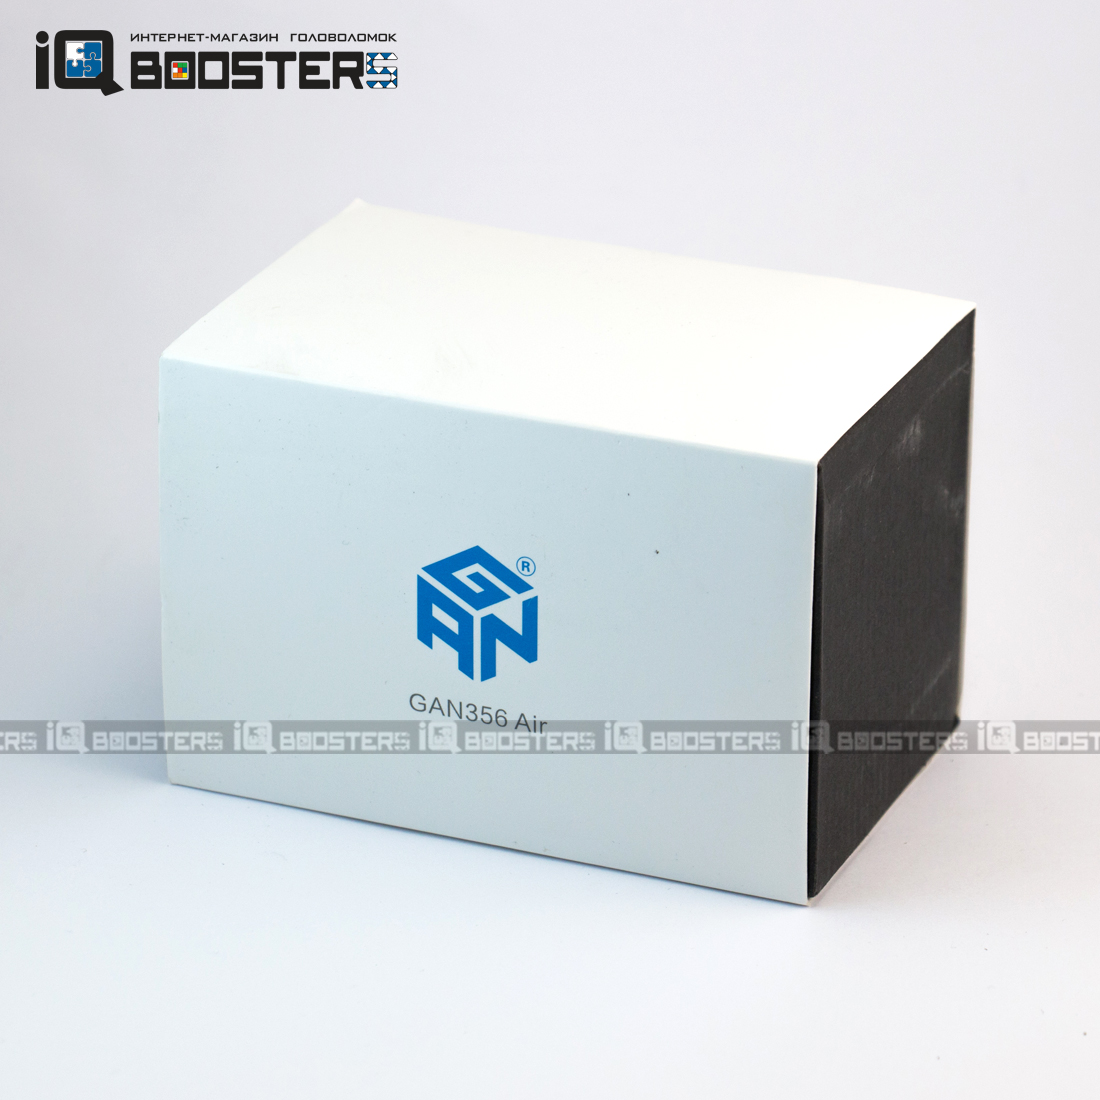 gan_356_air_white_box34